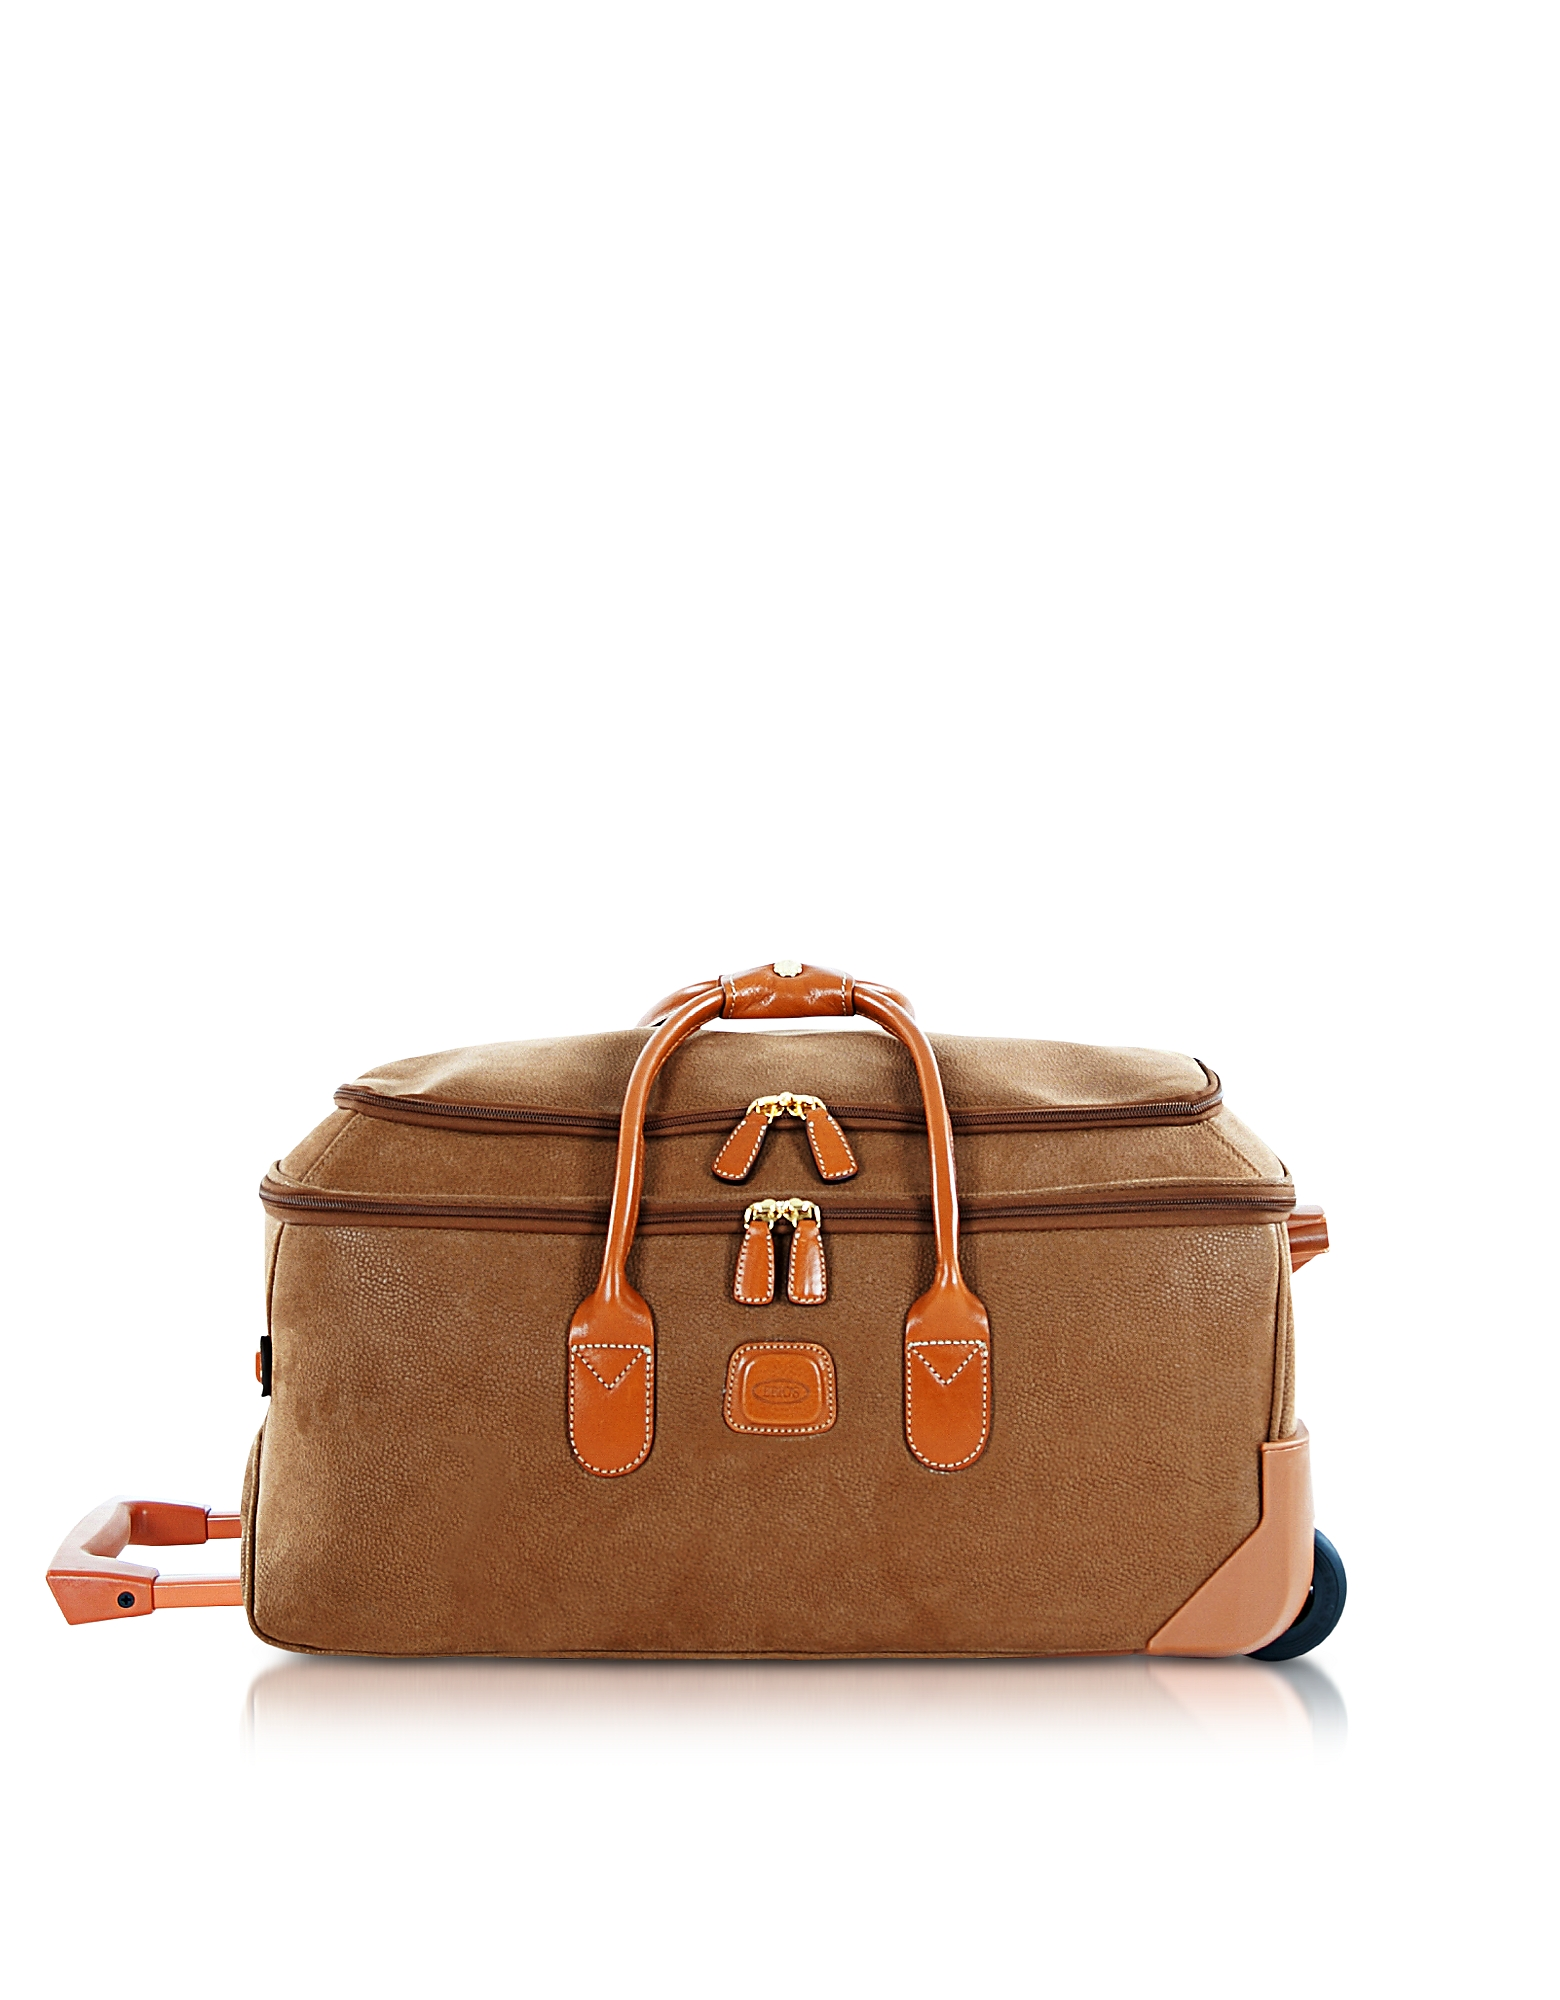 Bric's Travel Bags, Life - Medium Camel Micro Suede Rolling Duffle Bag